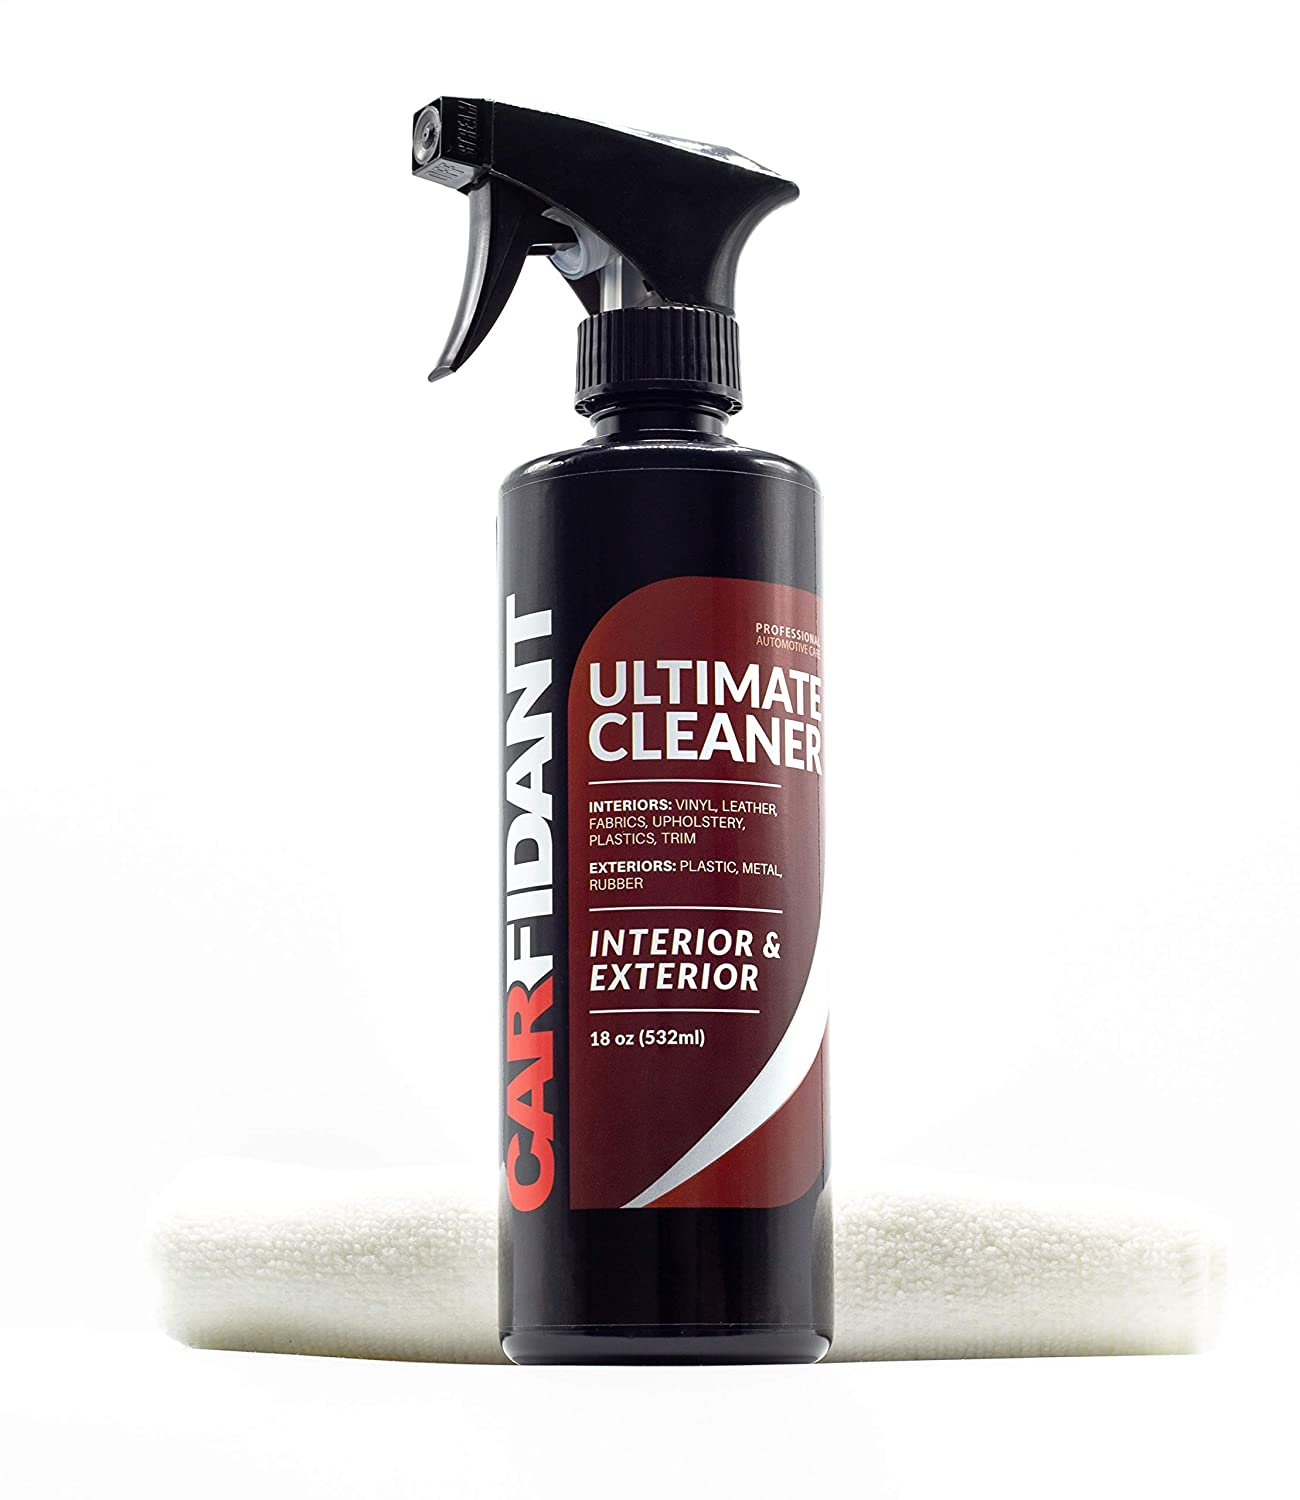 Carfidant Ultimate Interior Exterior Cleaner - The Ultimate Automotive All Purpose Cleaner for Cleaning Interior Carpet Upholstery Leather Vinyl Cloth Plastic Seats Trim Engine Mats Wheels - Kit